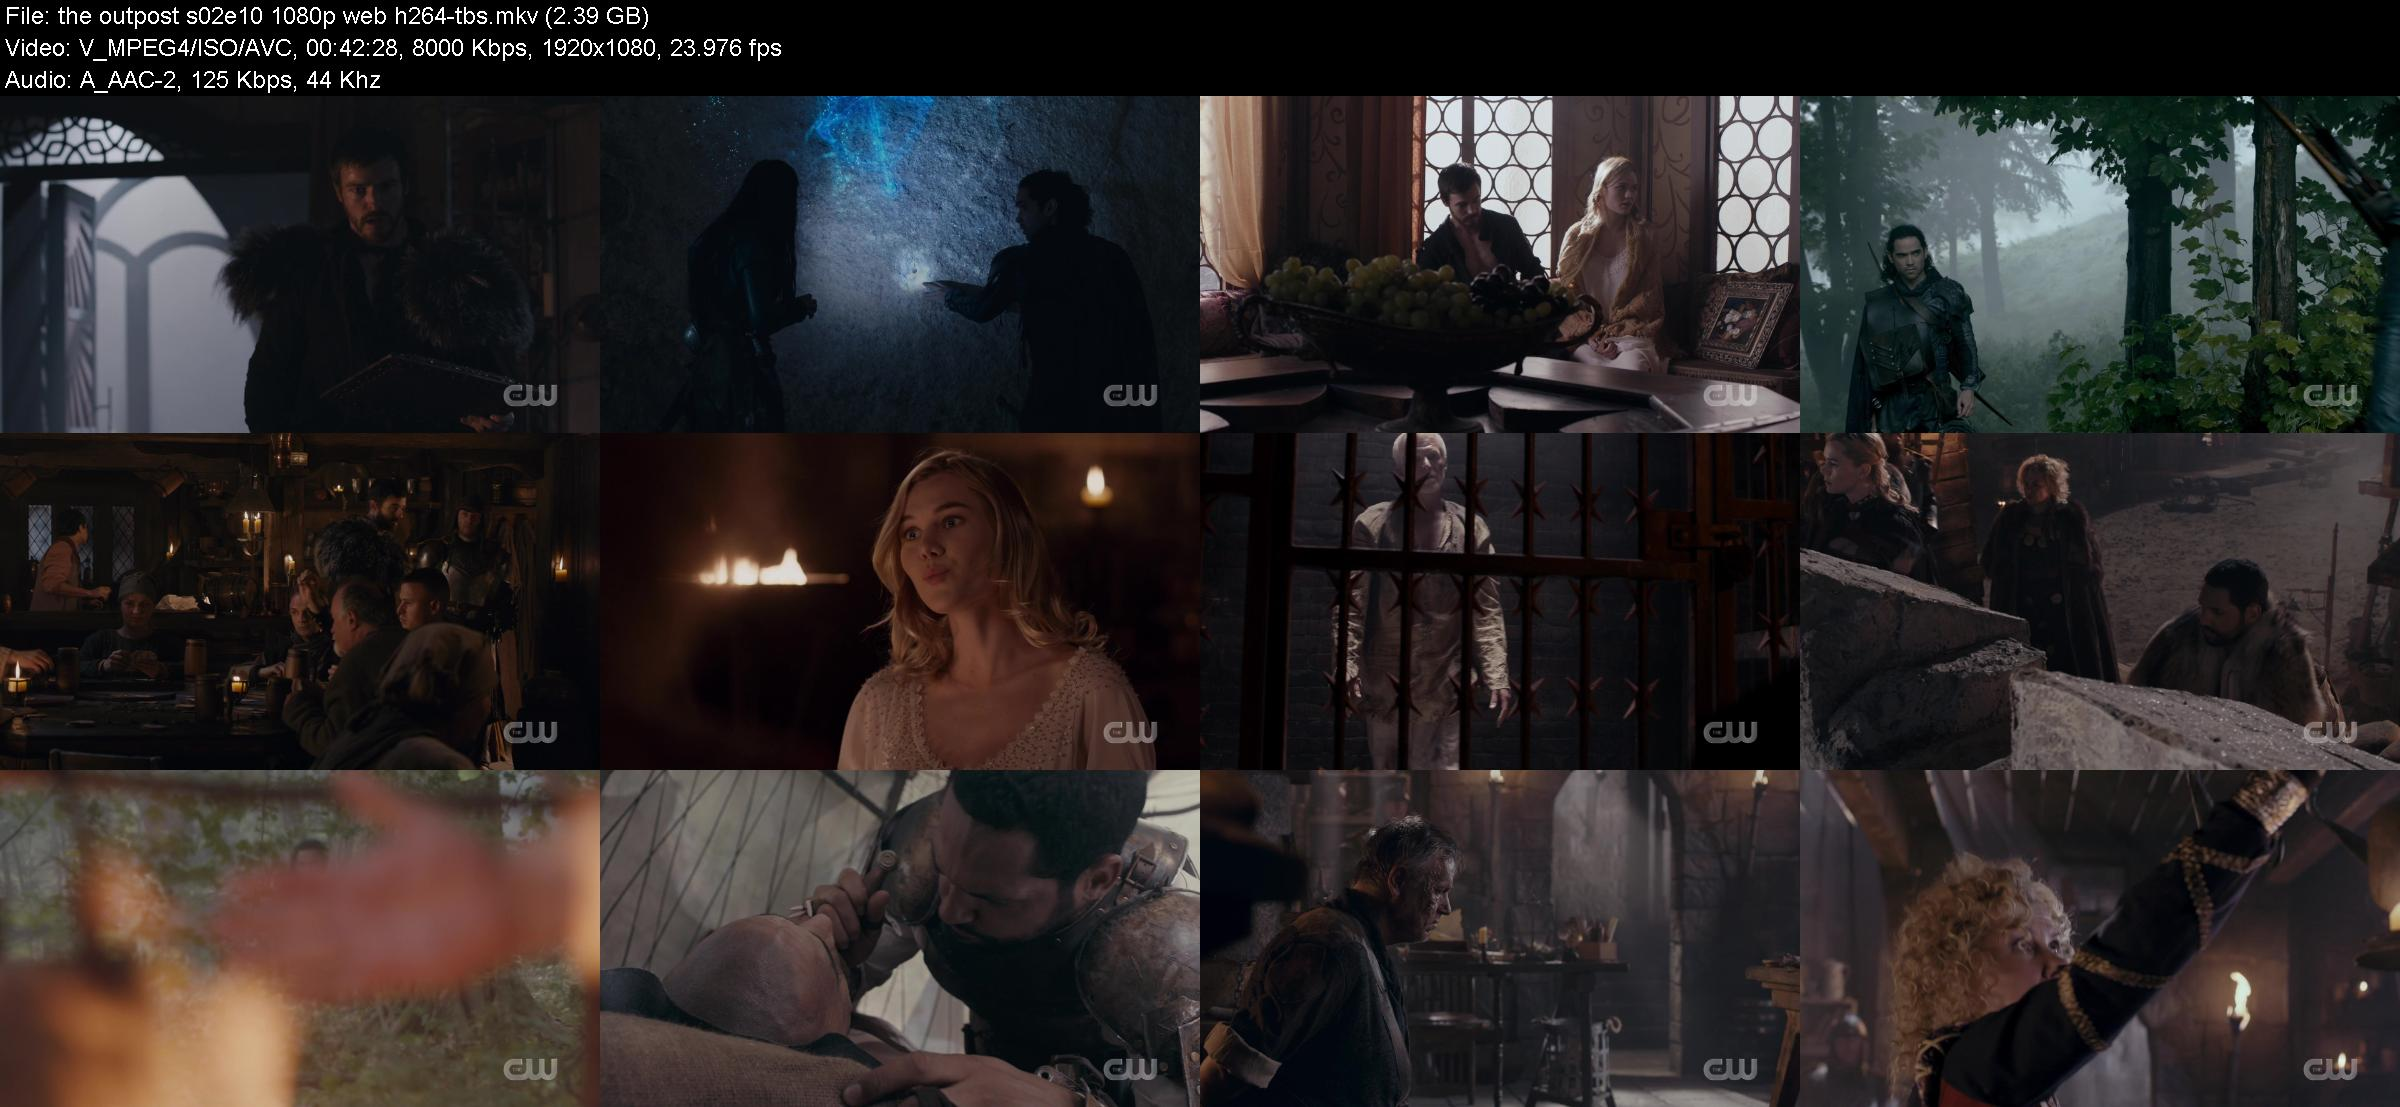 The Outpost S02E10 1080p WEB h264-TBS